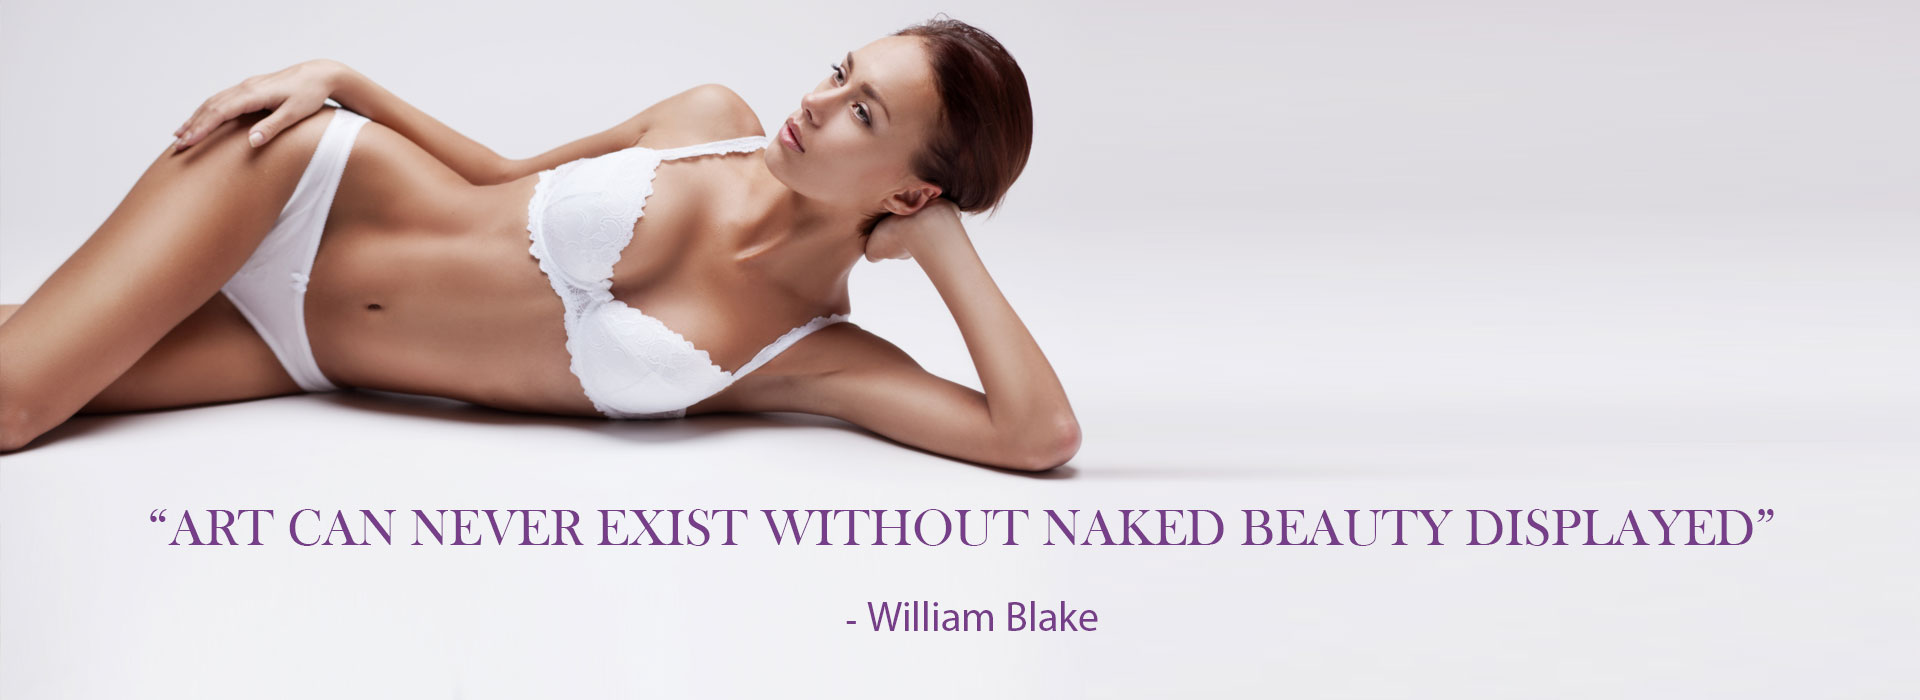 diolaze-laser-hair-removal-inmode-lake-norman-aesthetics-concierge-med-spa-laser-center-mooresville-nc-28117